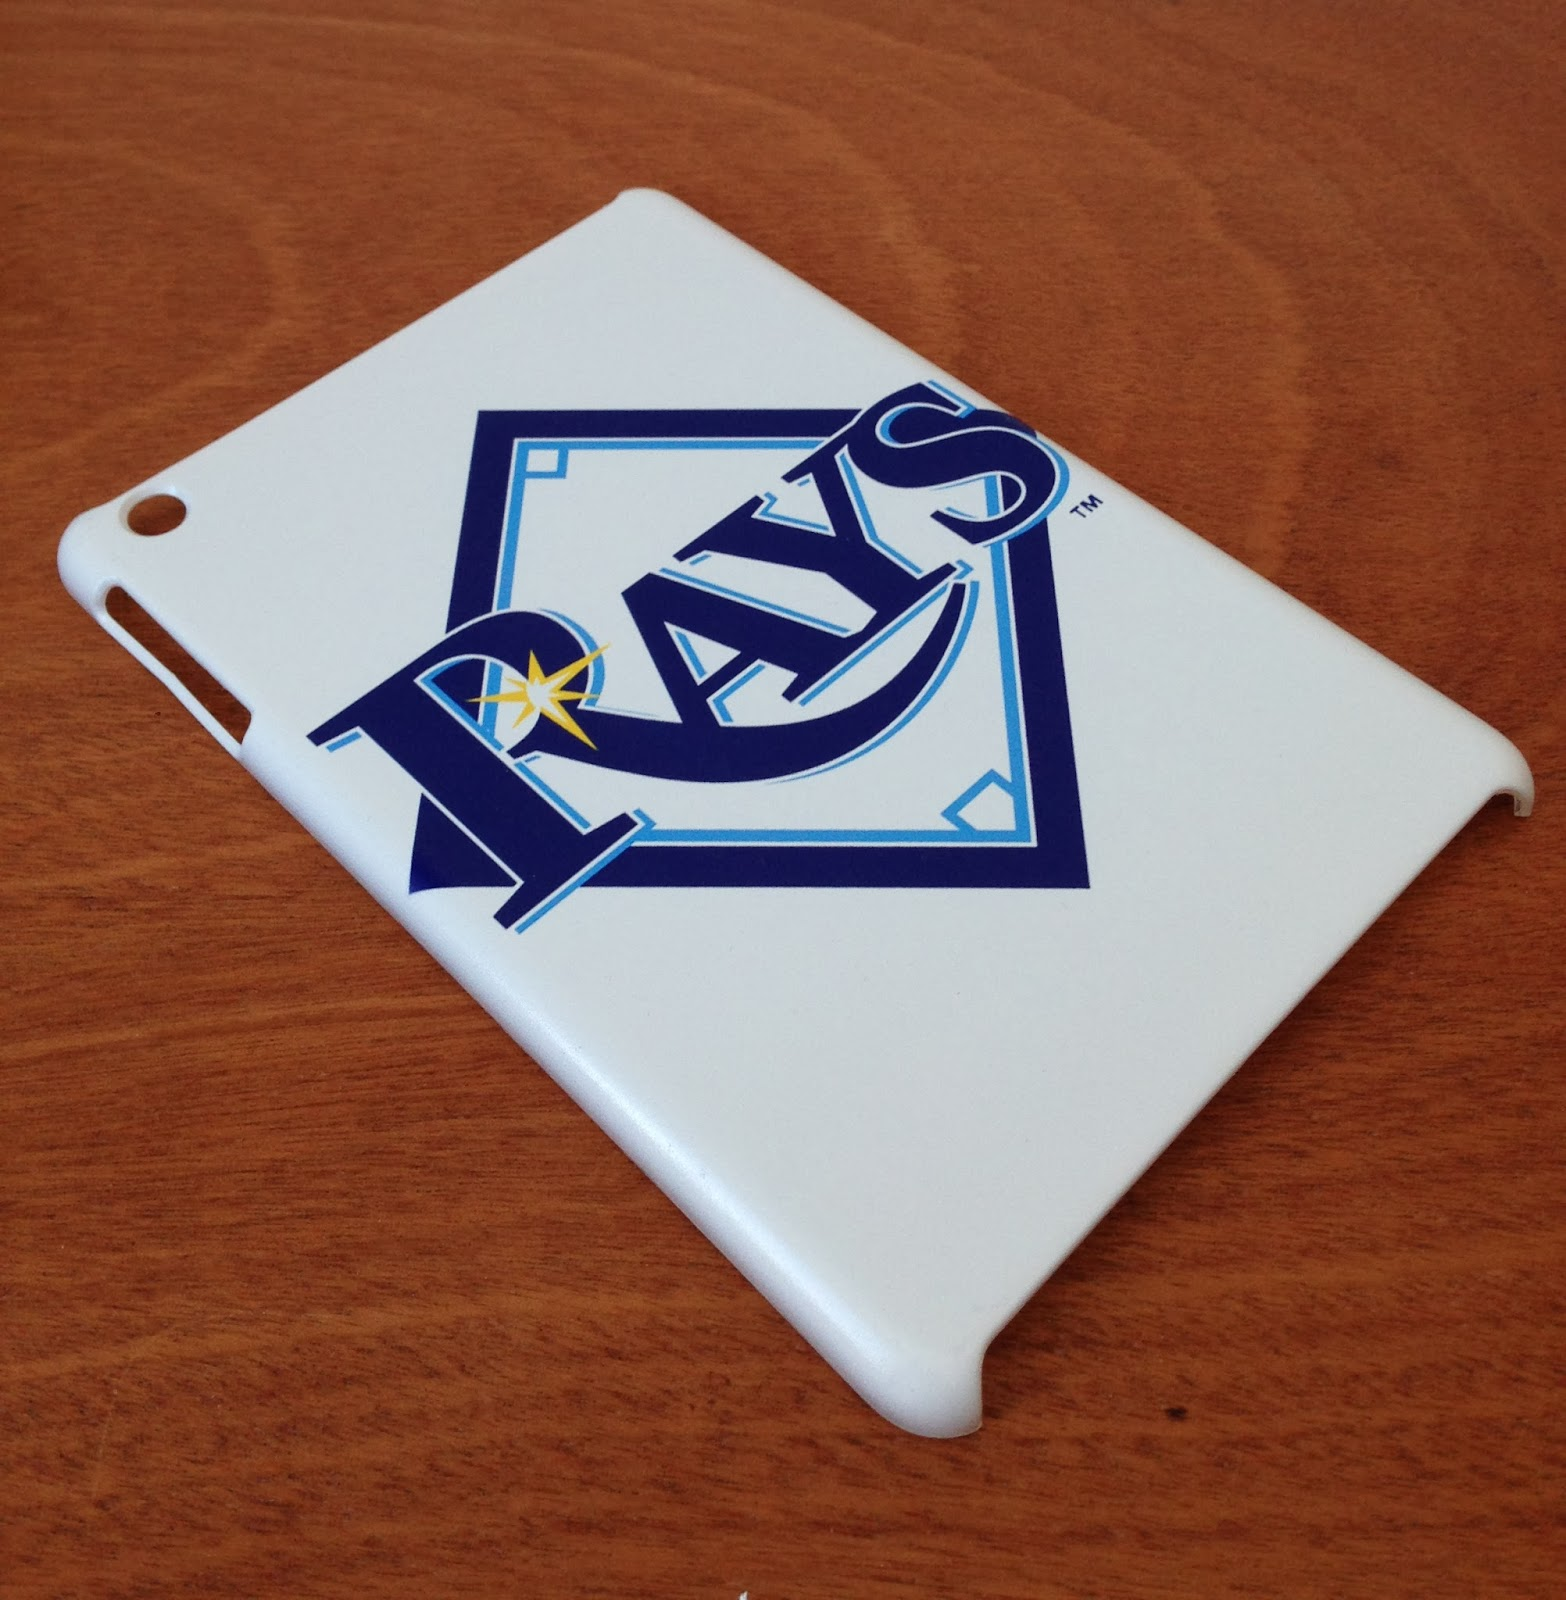 Tampa Bay Rays iPad Mini 2 cover